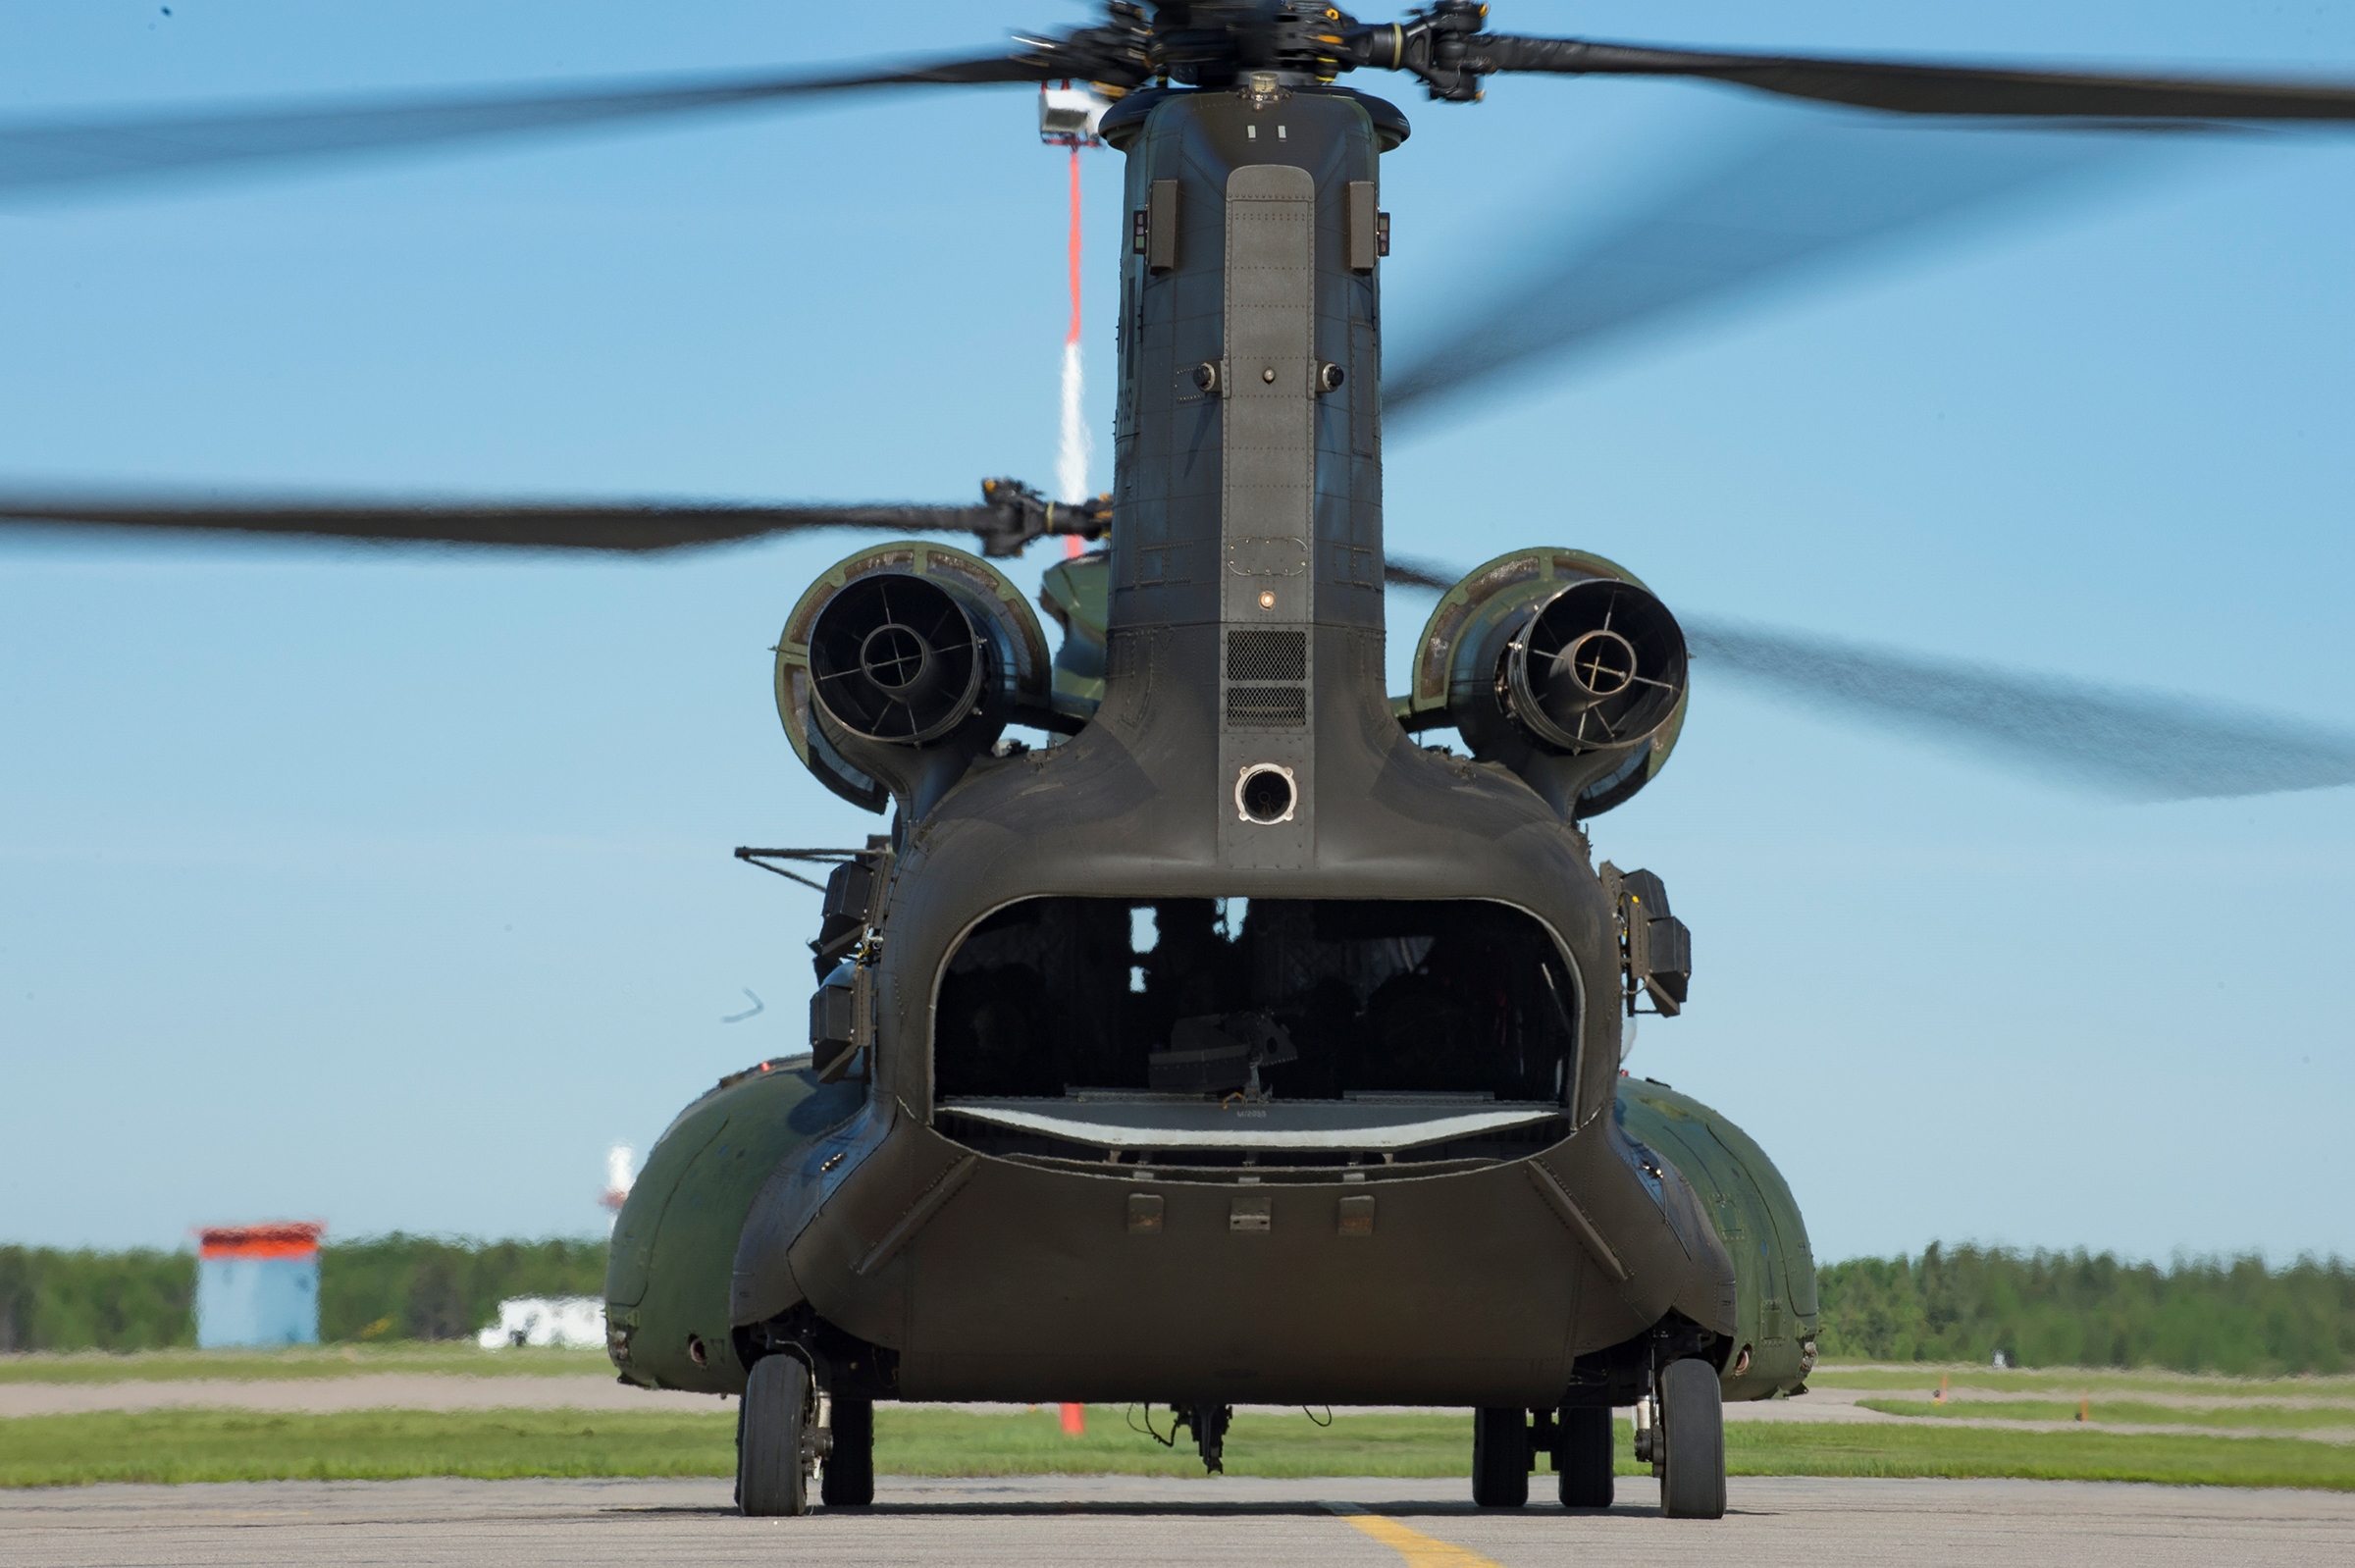 A Royal Canadian Air Force CH-147F Chinook helicopter prepares for flight during Exercise Maple Flag 50 at 4 Wing Cold Lake, Alberta, on May 30, 2017. PHOTO: Master Corporal Heather MacRae, CK05-2017-0462-005